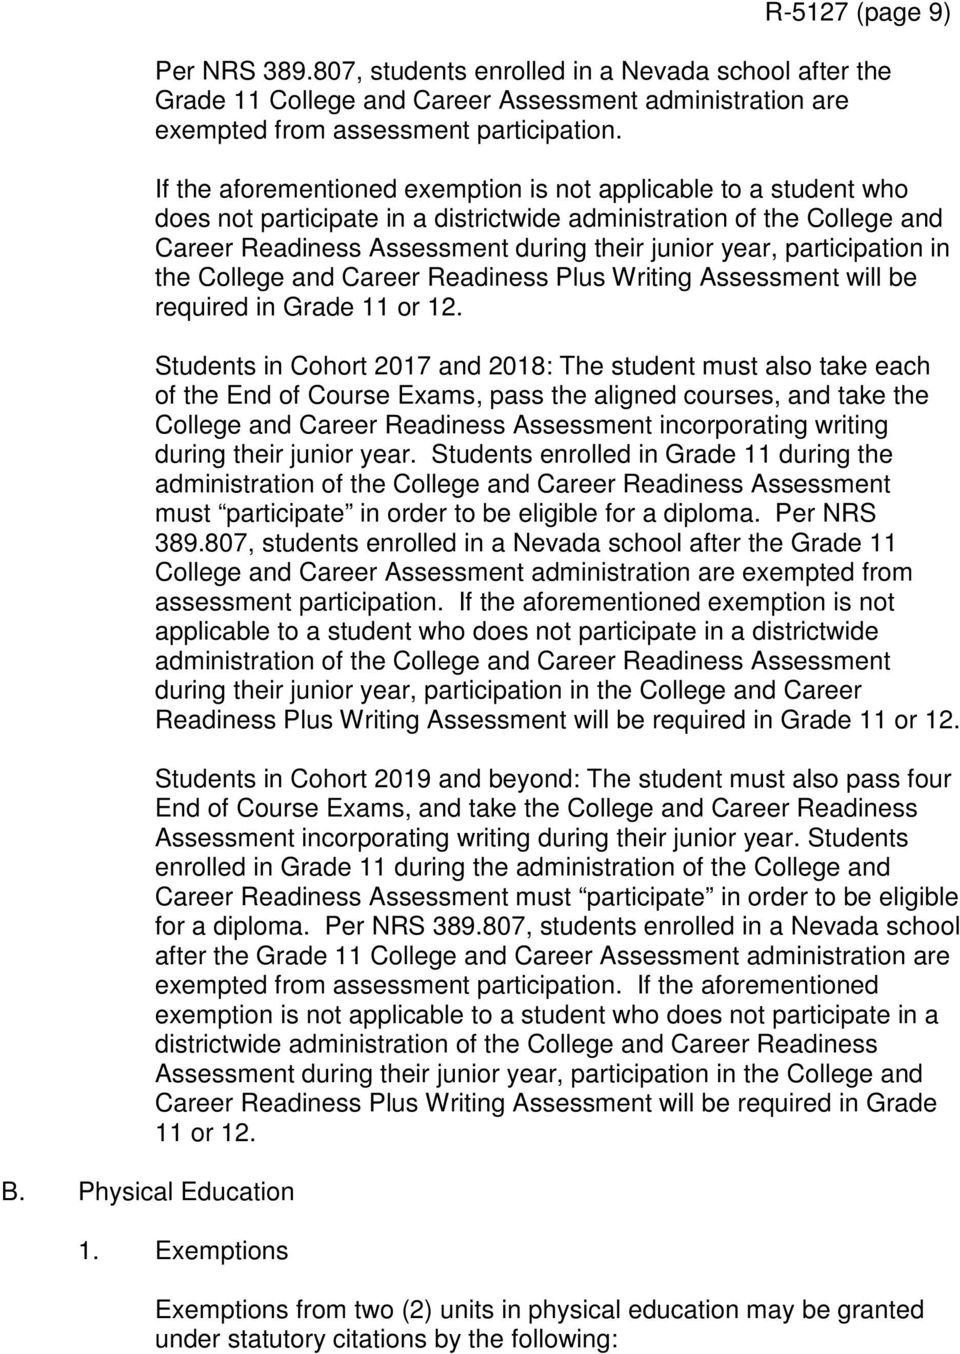 participation in the College and Career Readiness Plus Writing Assessment will be required in Grade 11 or 12.